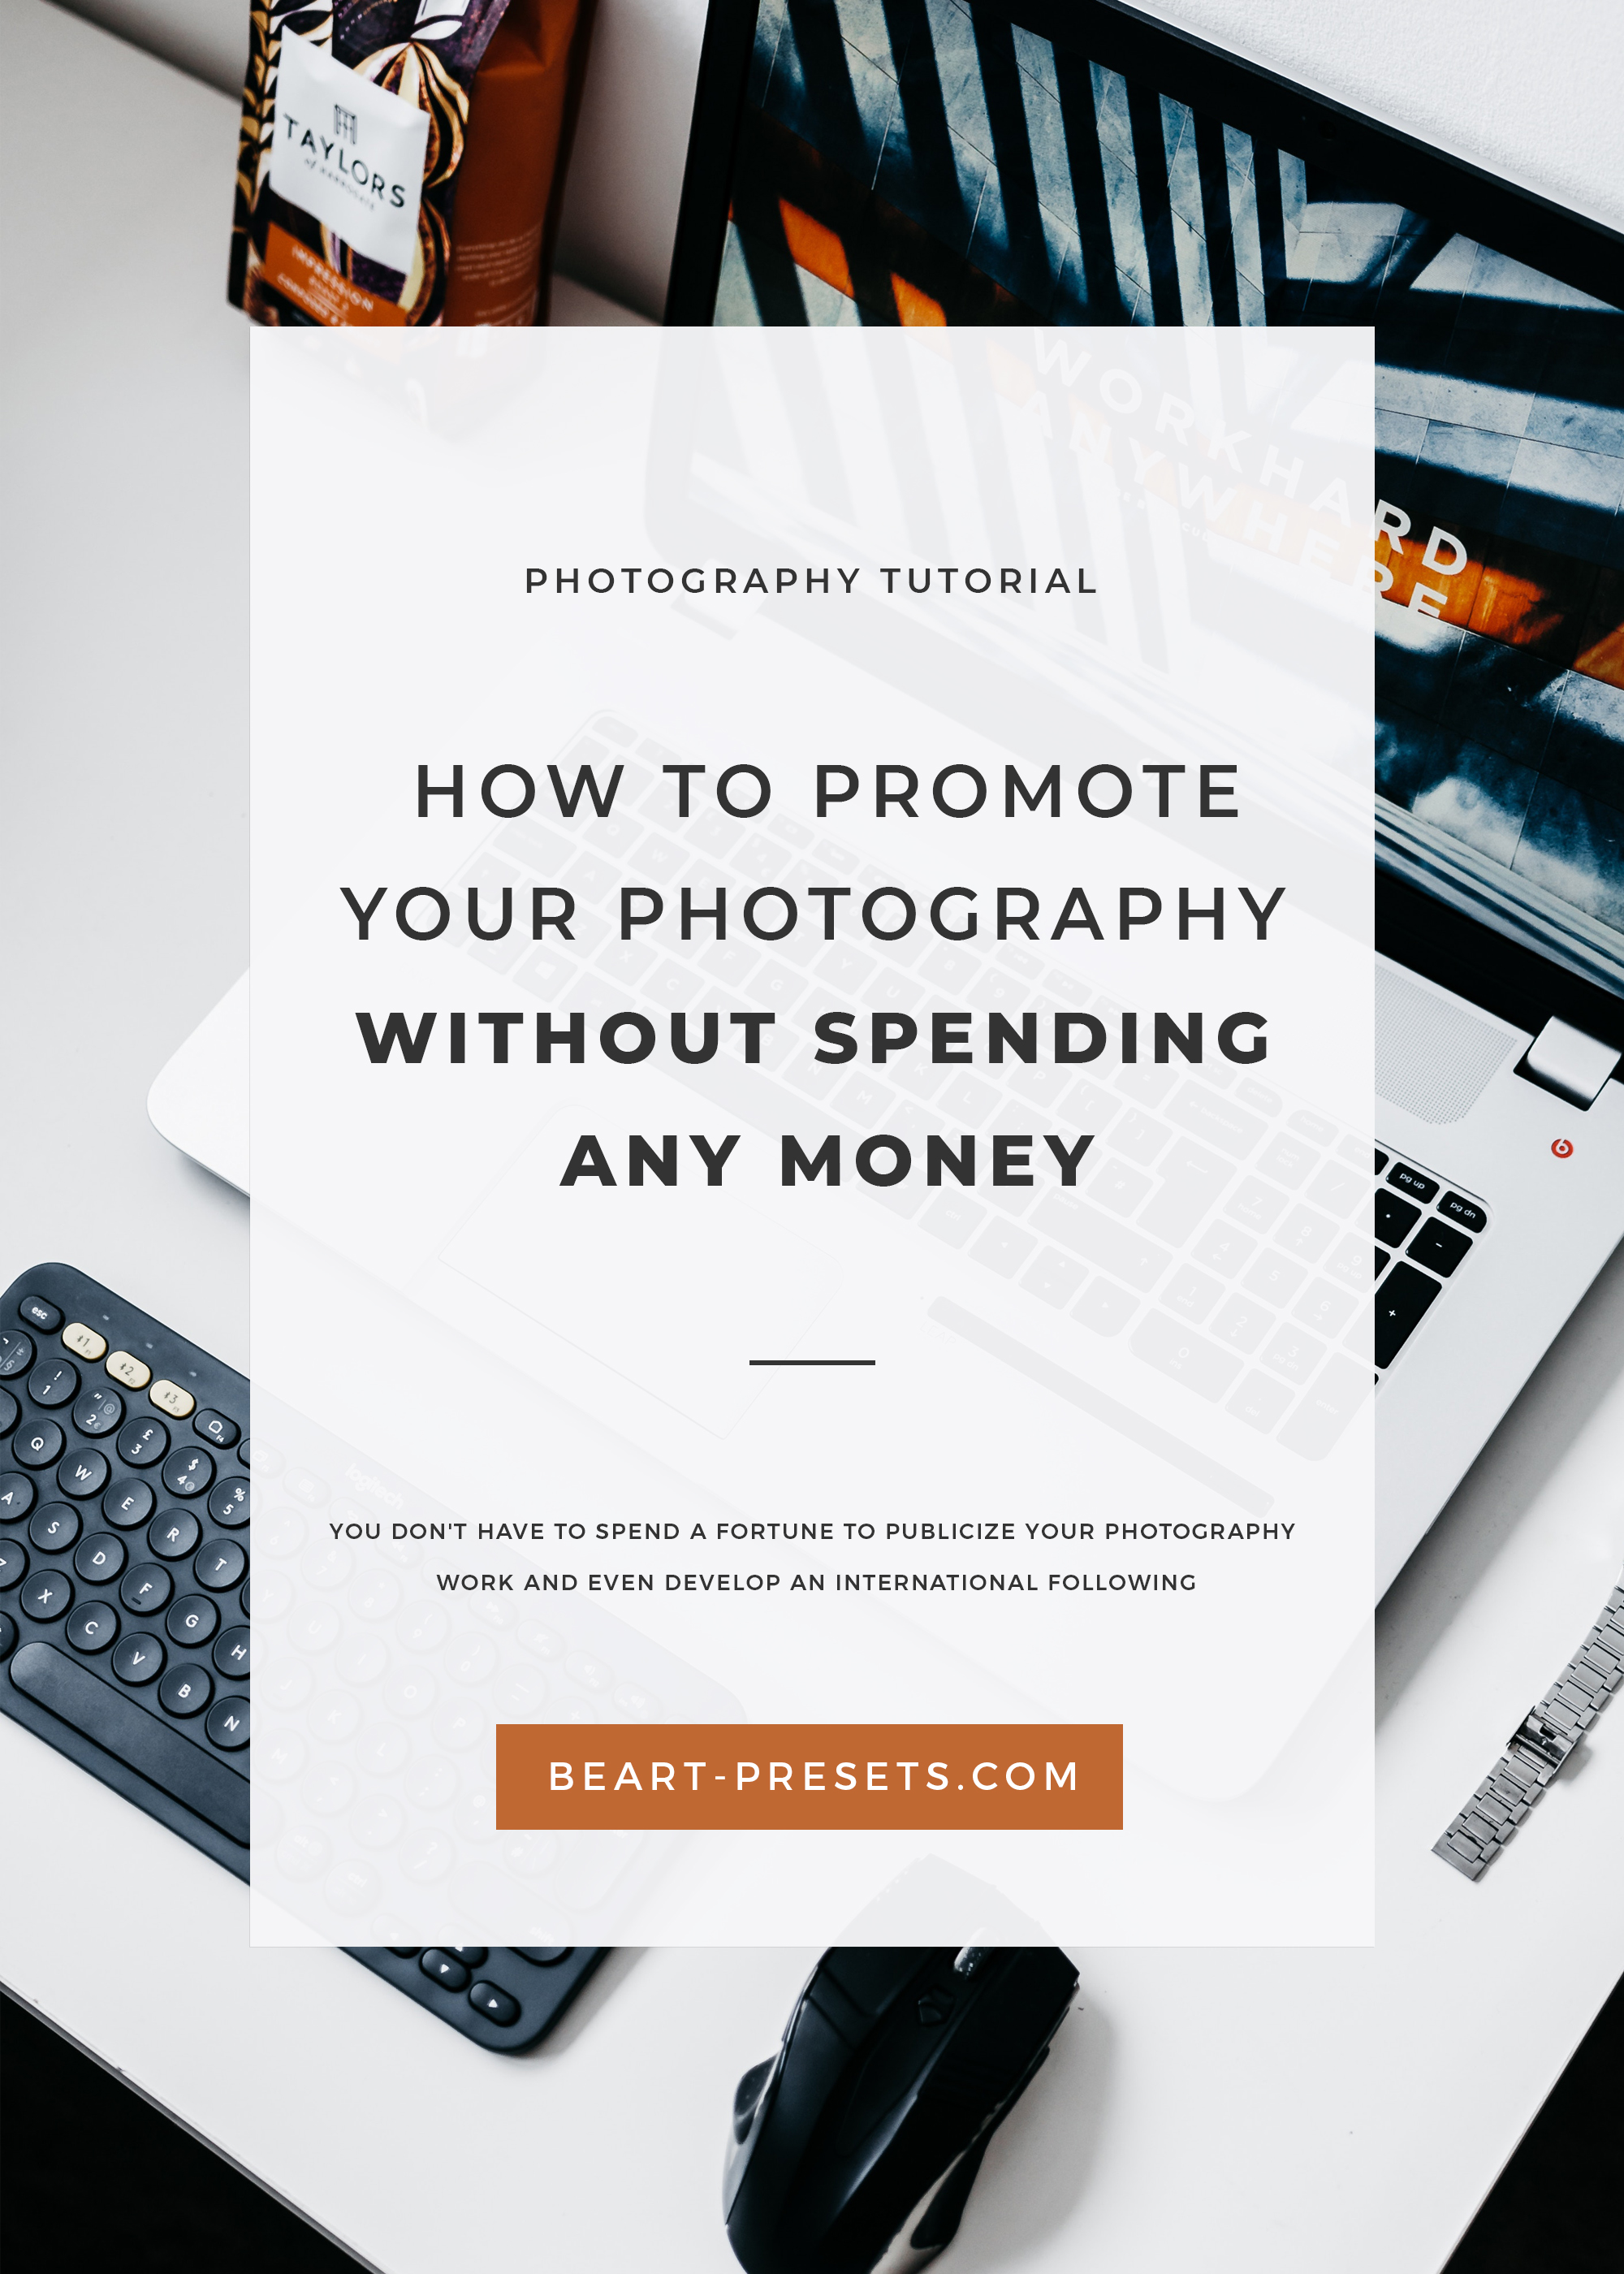 HOW TO PROMOTE YOUR PHOTOGRAPHY